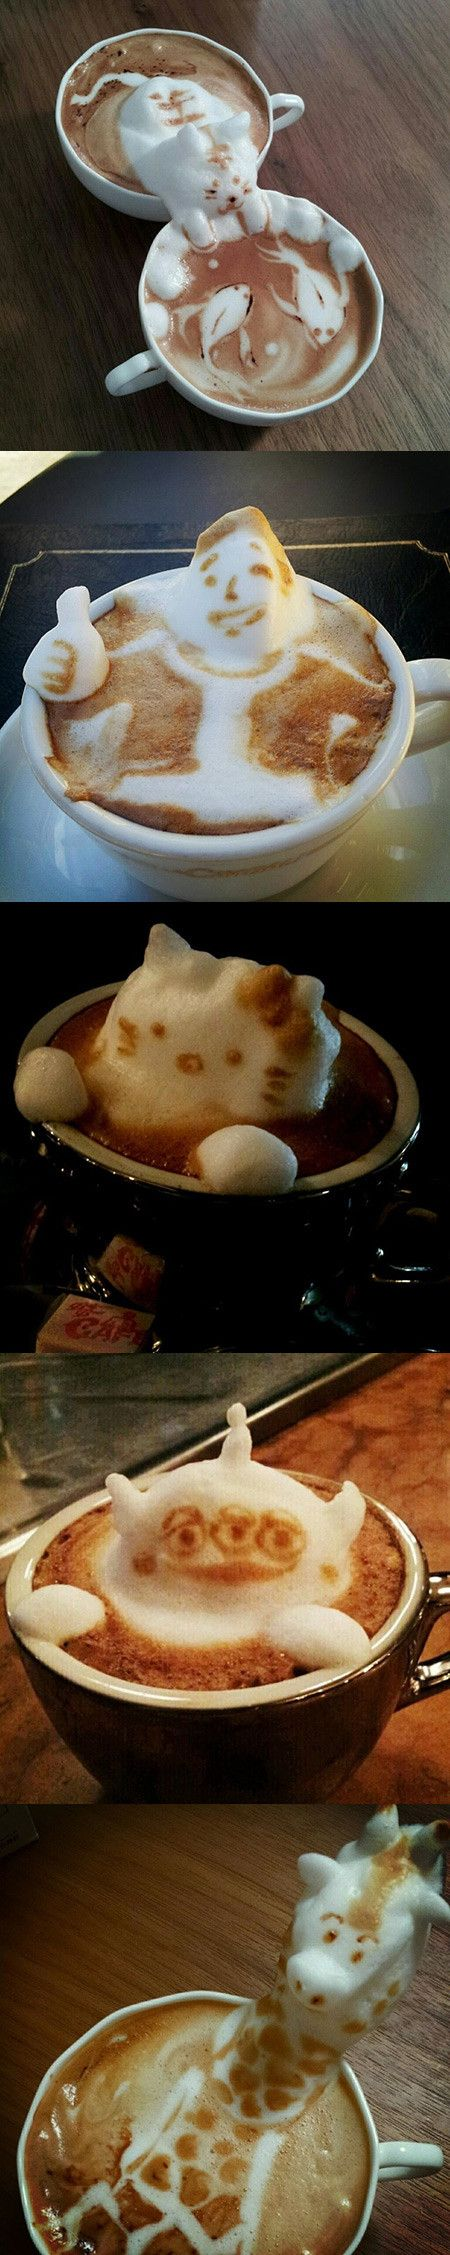 Late last year, we brought word of coffee artist Kazuki Yamamoto. He makes stunning cappuccino art. In the last few months, Yamamoto has been perfecting his three dimensional creations. He's gotten even better.